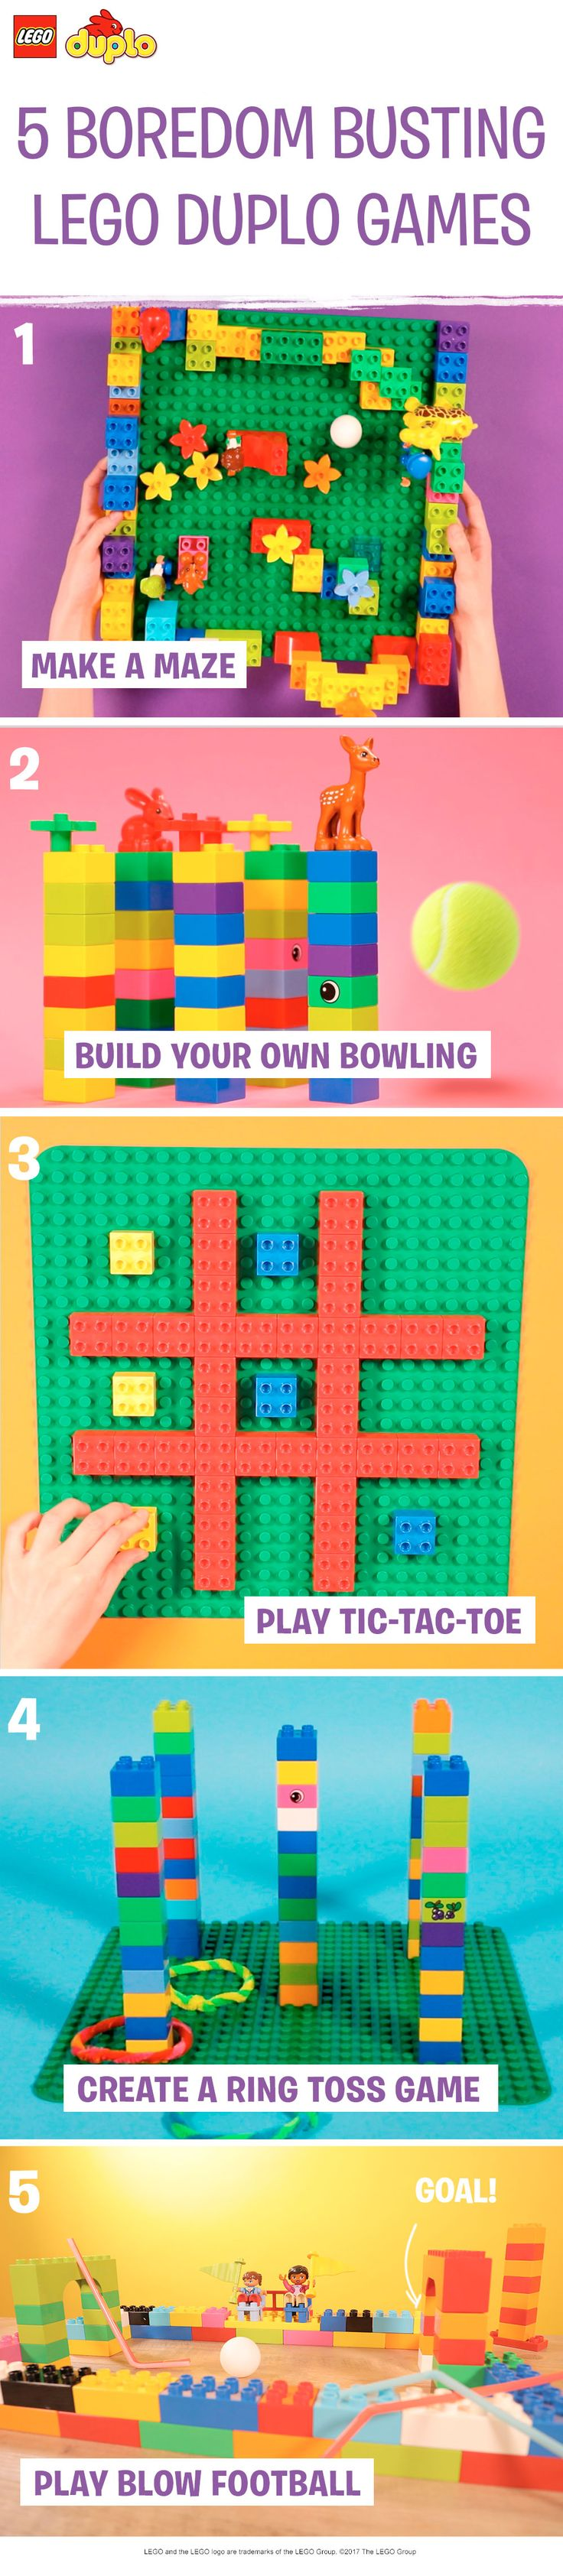 These LEGO DUPLO brick play activities are great boredom busting ideas for any rainy day – or even when it's too hot to go outside. Build a maze, play tic-tac-toe, get the whole family up and moving with a game of bowling or ring toss, and finish it all off with a competitive game of blow football. All you need are some LEGO DUPLO bricks and a few craft supplies for an afternoon of simple indoor fun. Why not make your own LEGO DUPLO championship and play all 5 activities together?